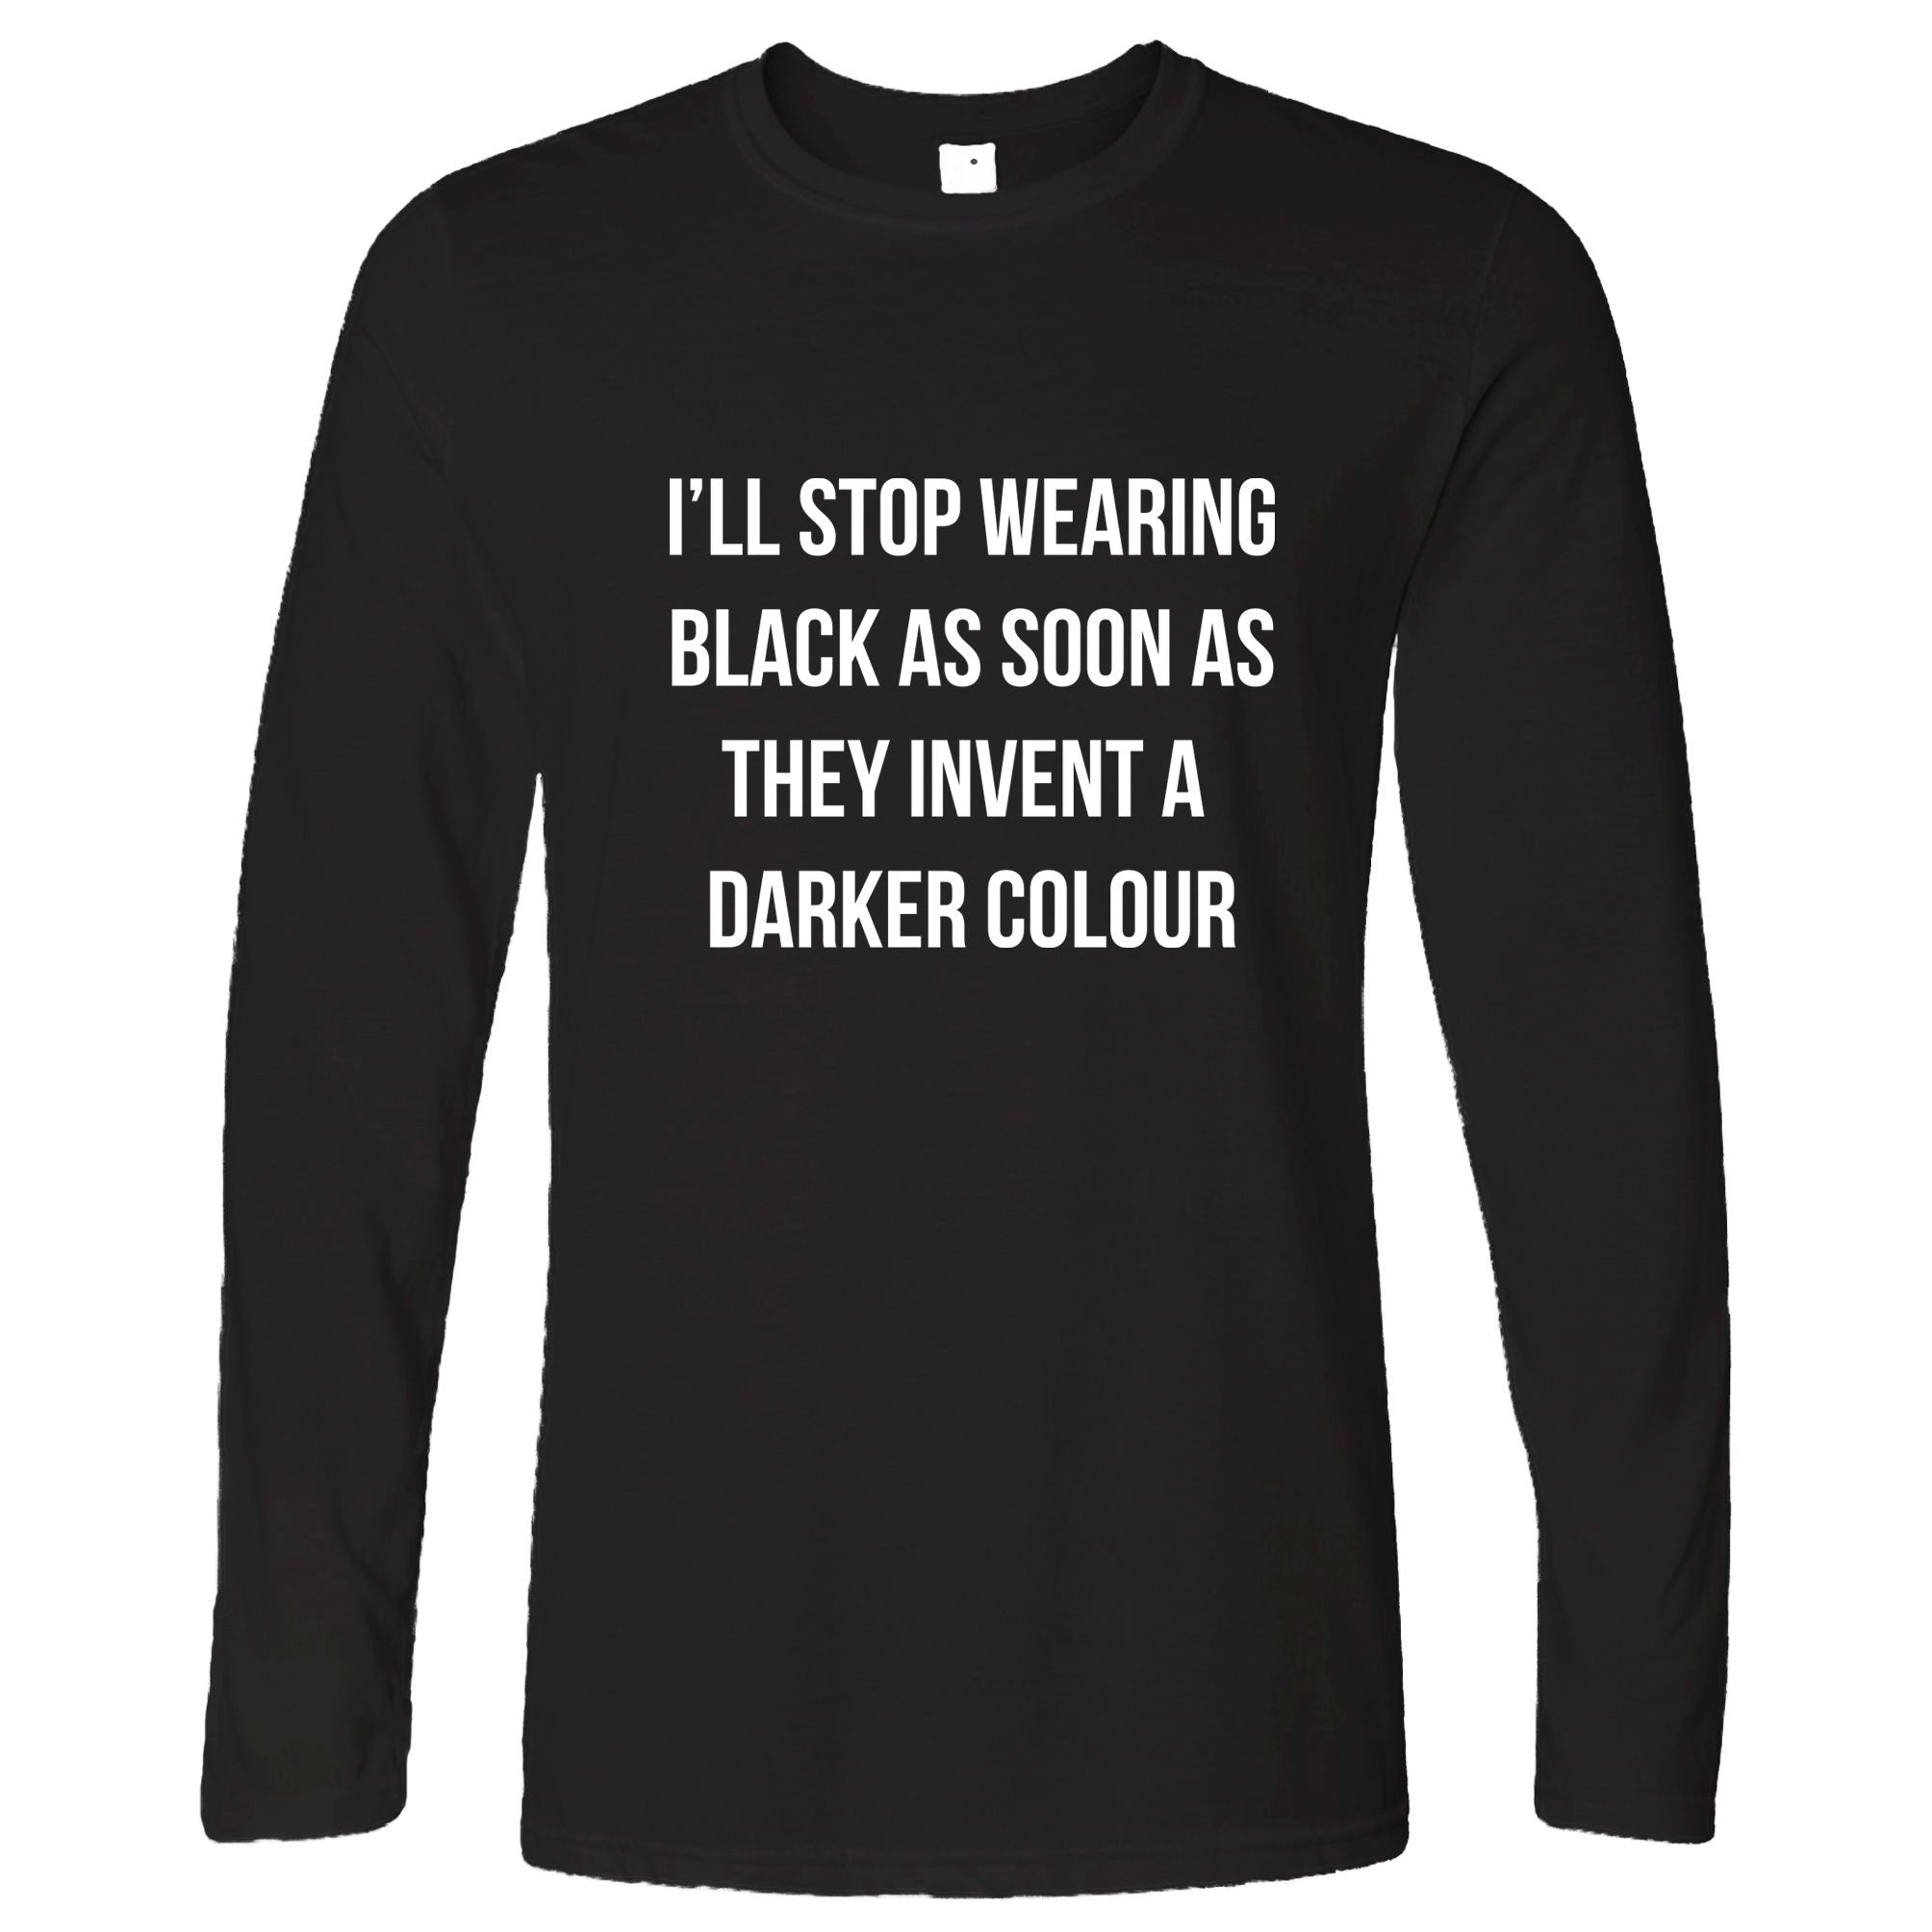 Novelty Goth Long Sleeve I'll Stop Wearing Black... Joke T-Shirt